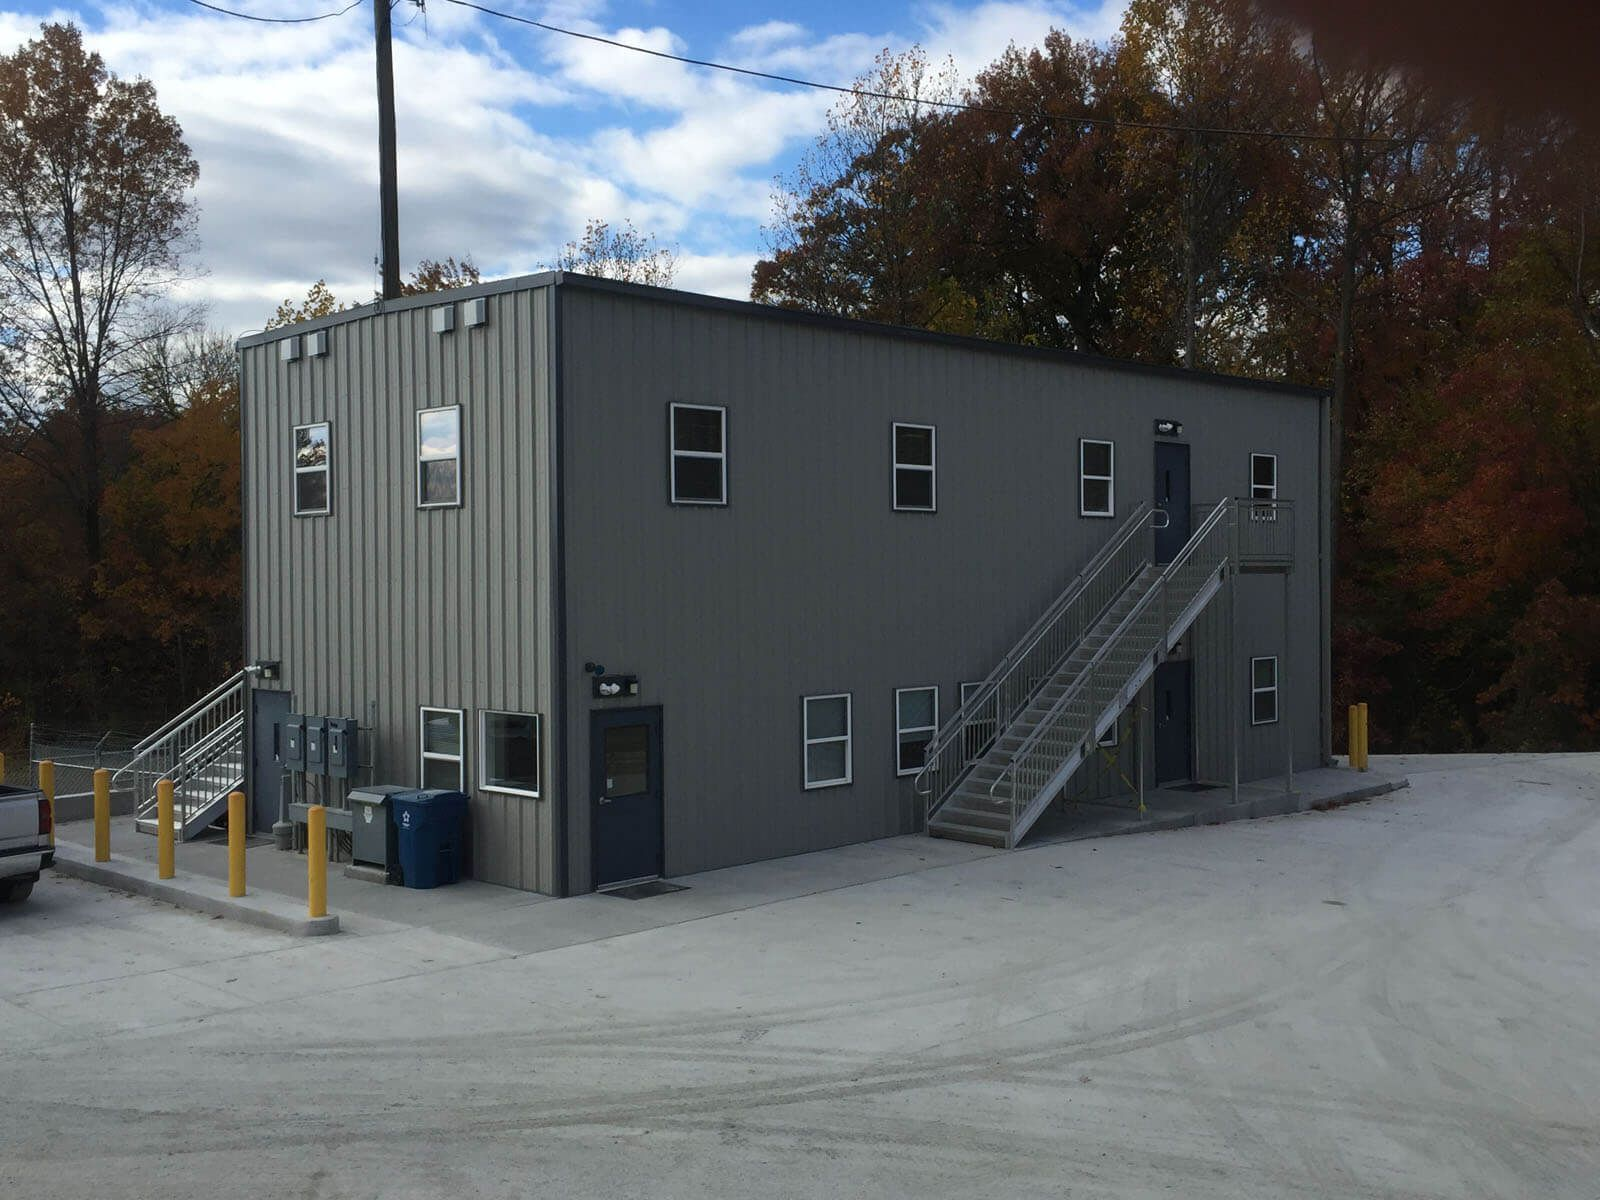 Two Story Dispatch Office A Modular Building Case Study